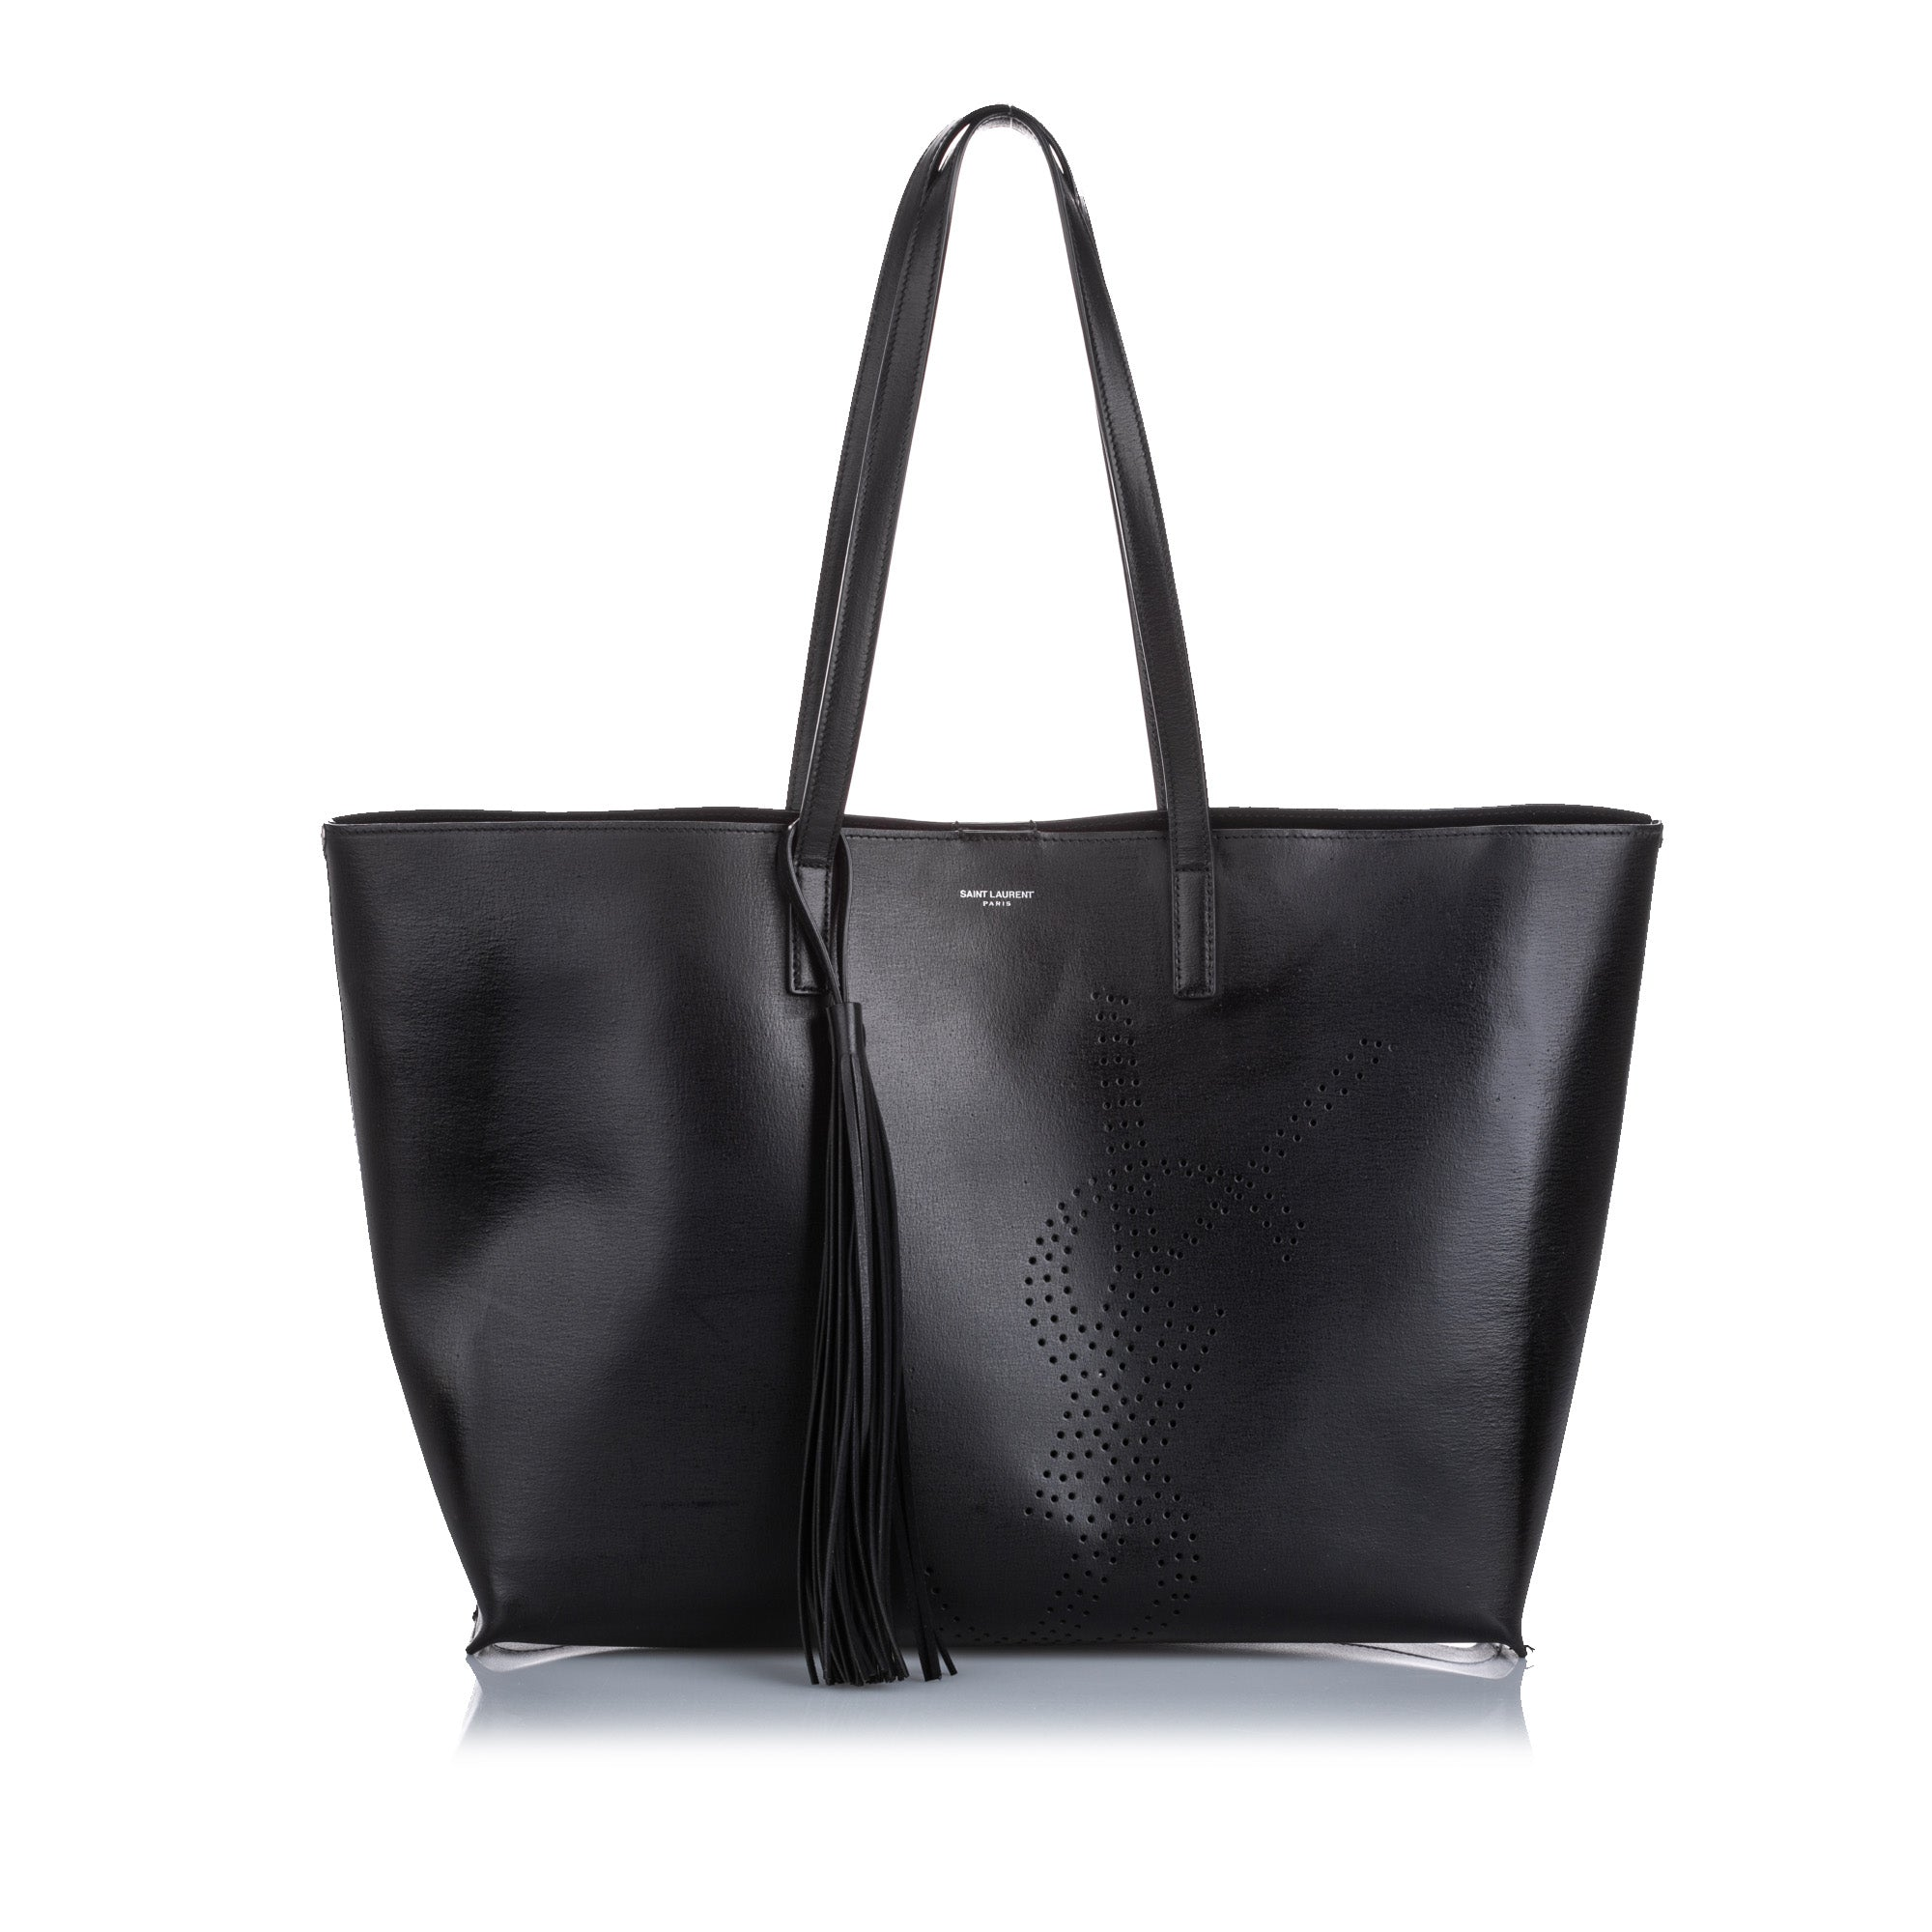 YSL Perforated Leather Shopping Tote